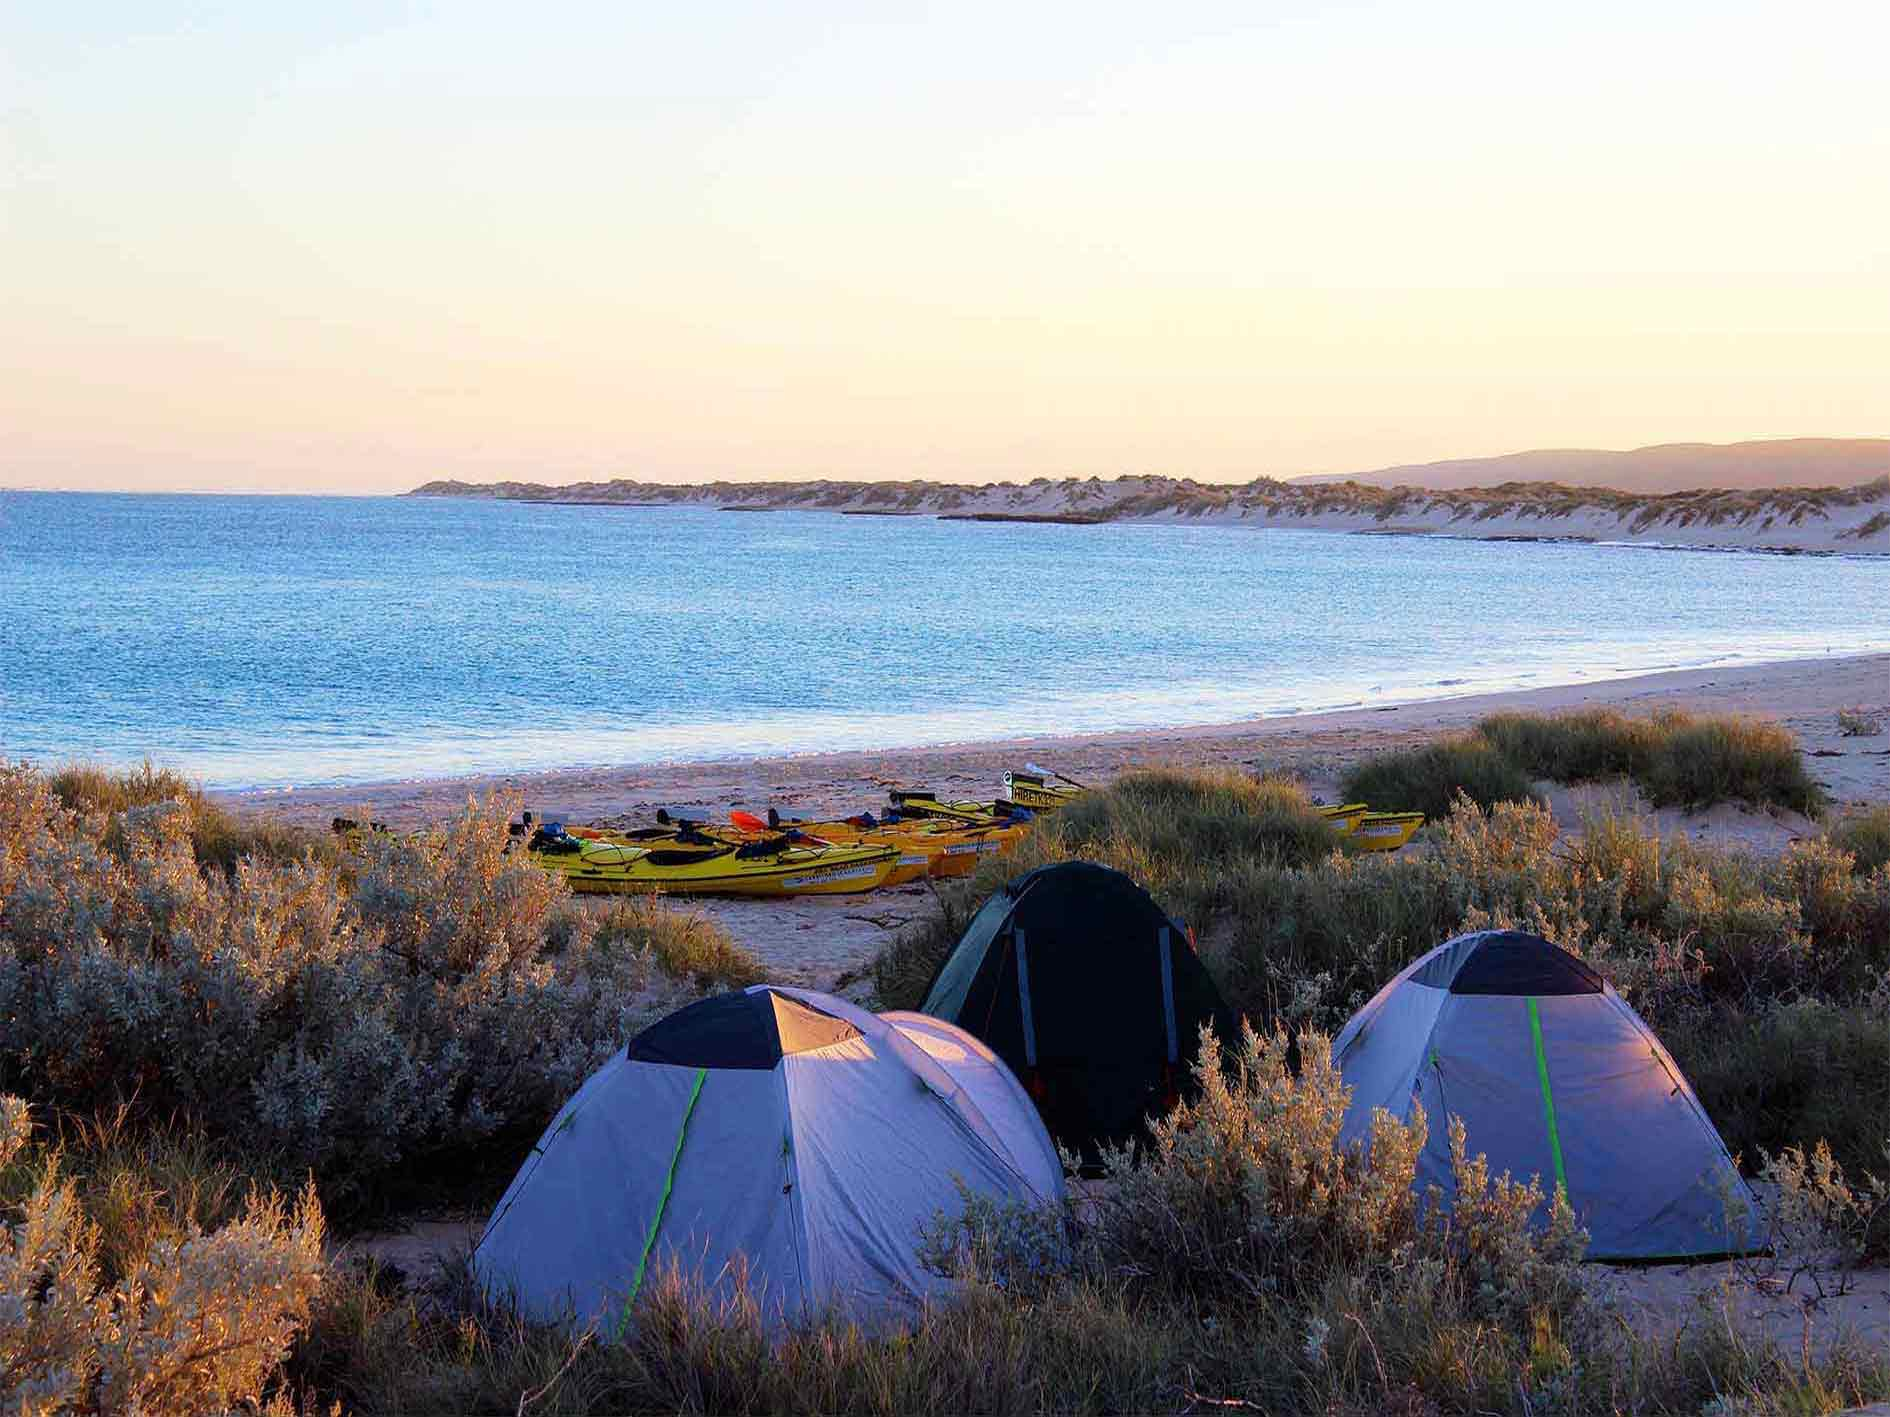 tents and kayaks on a beautiful beach at sunset on Exmouth Adventure Co's 3 day Reef and Beach sea kayaking, snorkelling and beach overnight camping tour, Ningaloo Reef, Exmouth, Western Australia